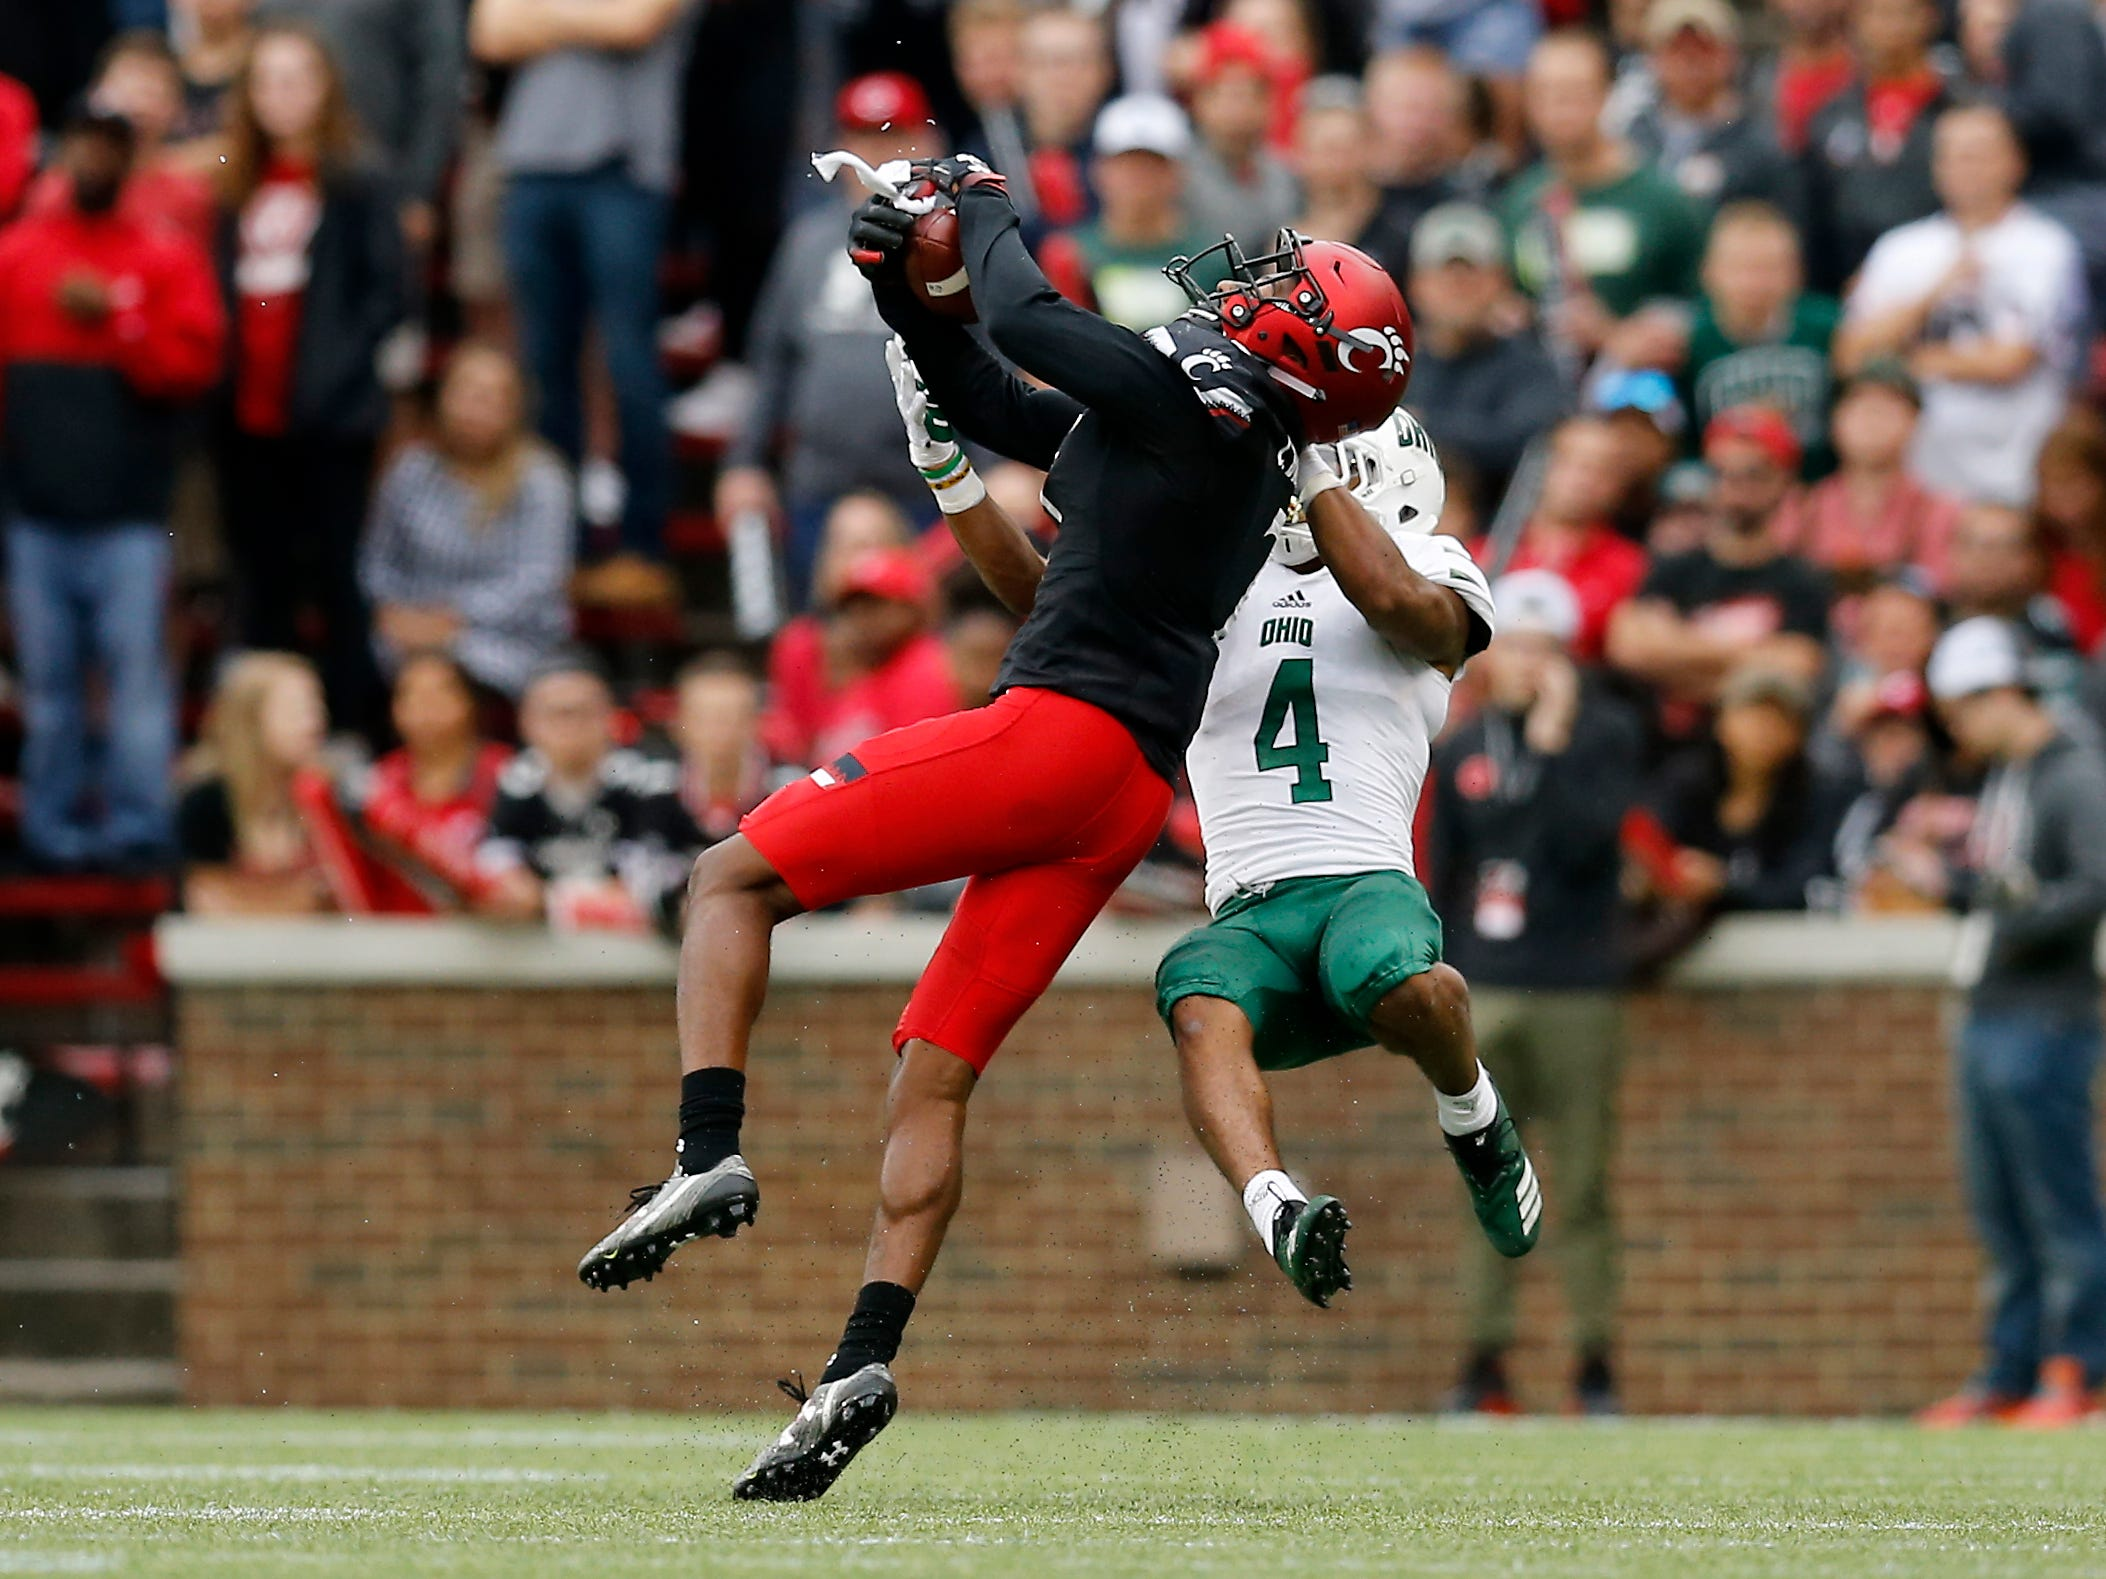 Cincinnati Bearcats cornerback Coby Bryant (7) nearly intercepts a pass intended for Ohio Bobcats wide receiver Papi White (4) in the second quarter of the NCAA football game between the Cincinnati Bearcats and the Ohio Bobcats at Nippert Stadium on the University of Cincinnati campus in Cincinnati on Saturday, Sept. 22, 2018. The Bobcats led 24-7 at halftime.